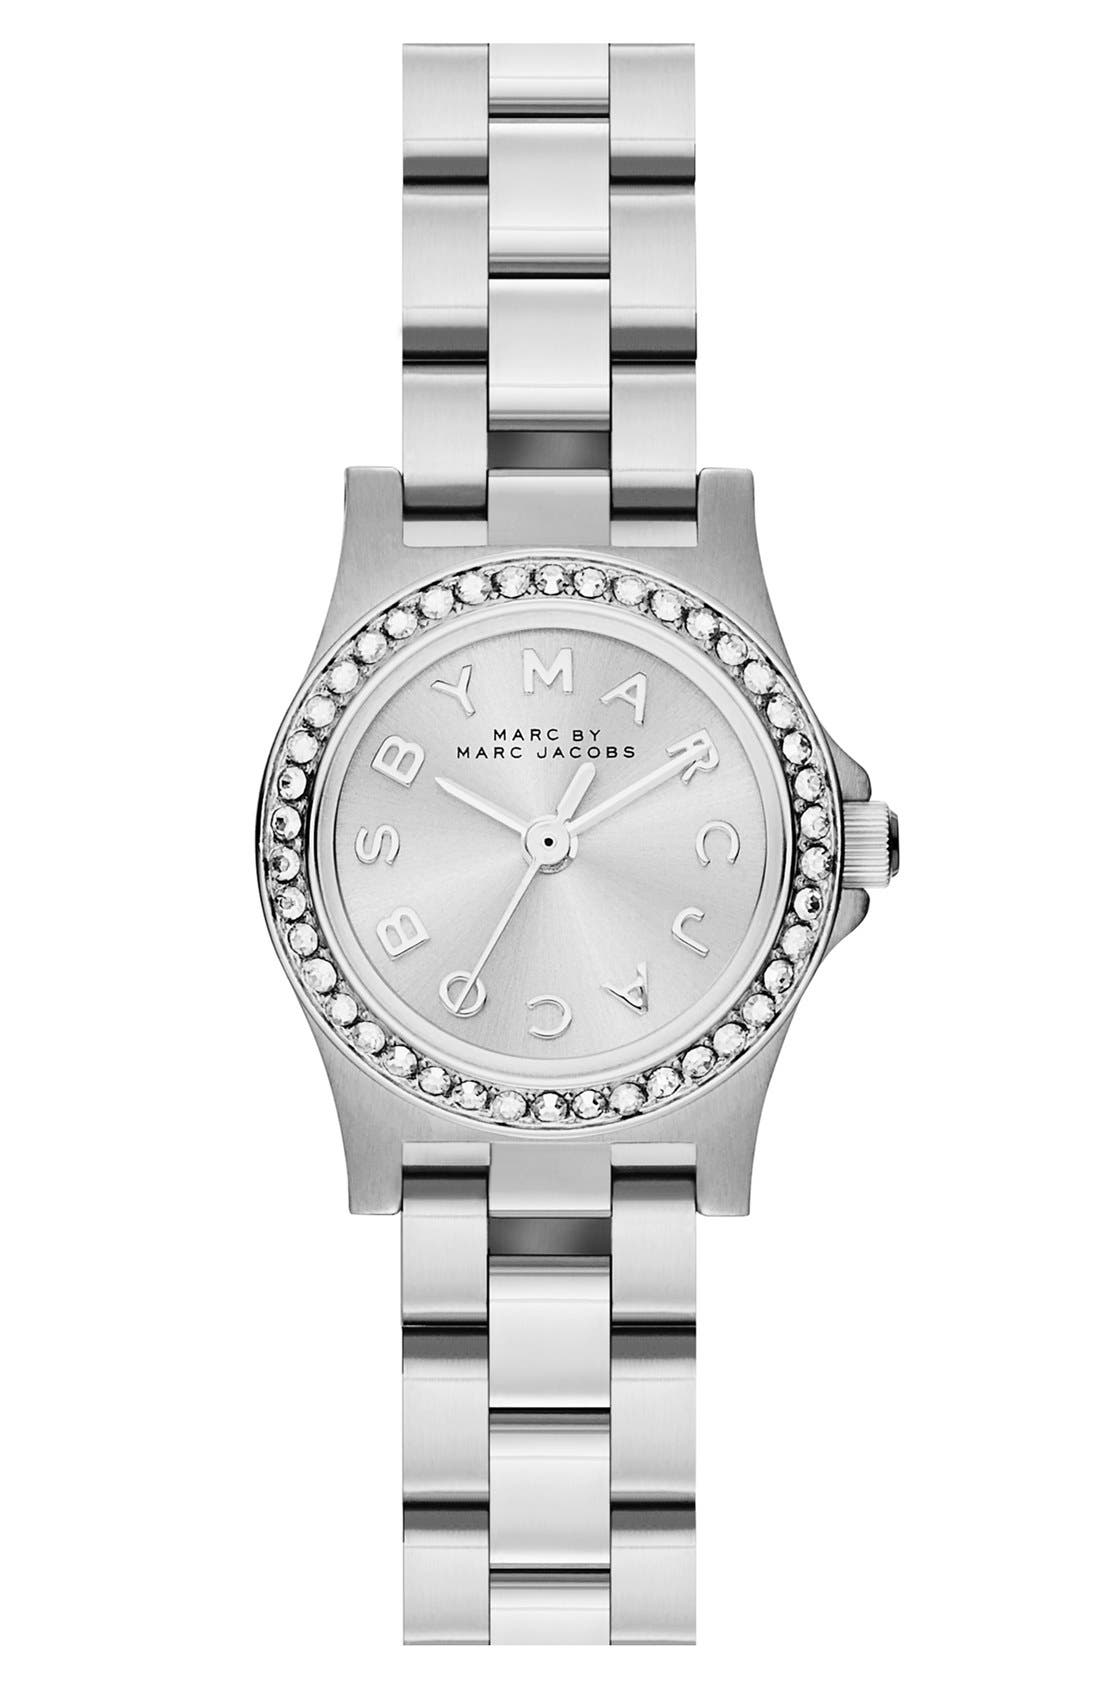 Main Image - MARC JACOBS 'Henry Dinky' Crystal Bracelet Watch, 21mm